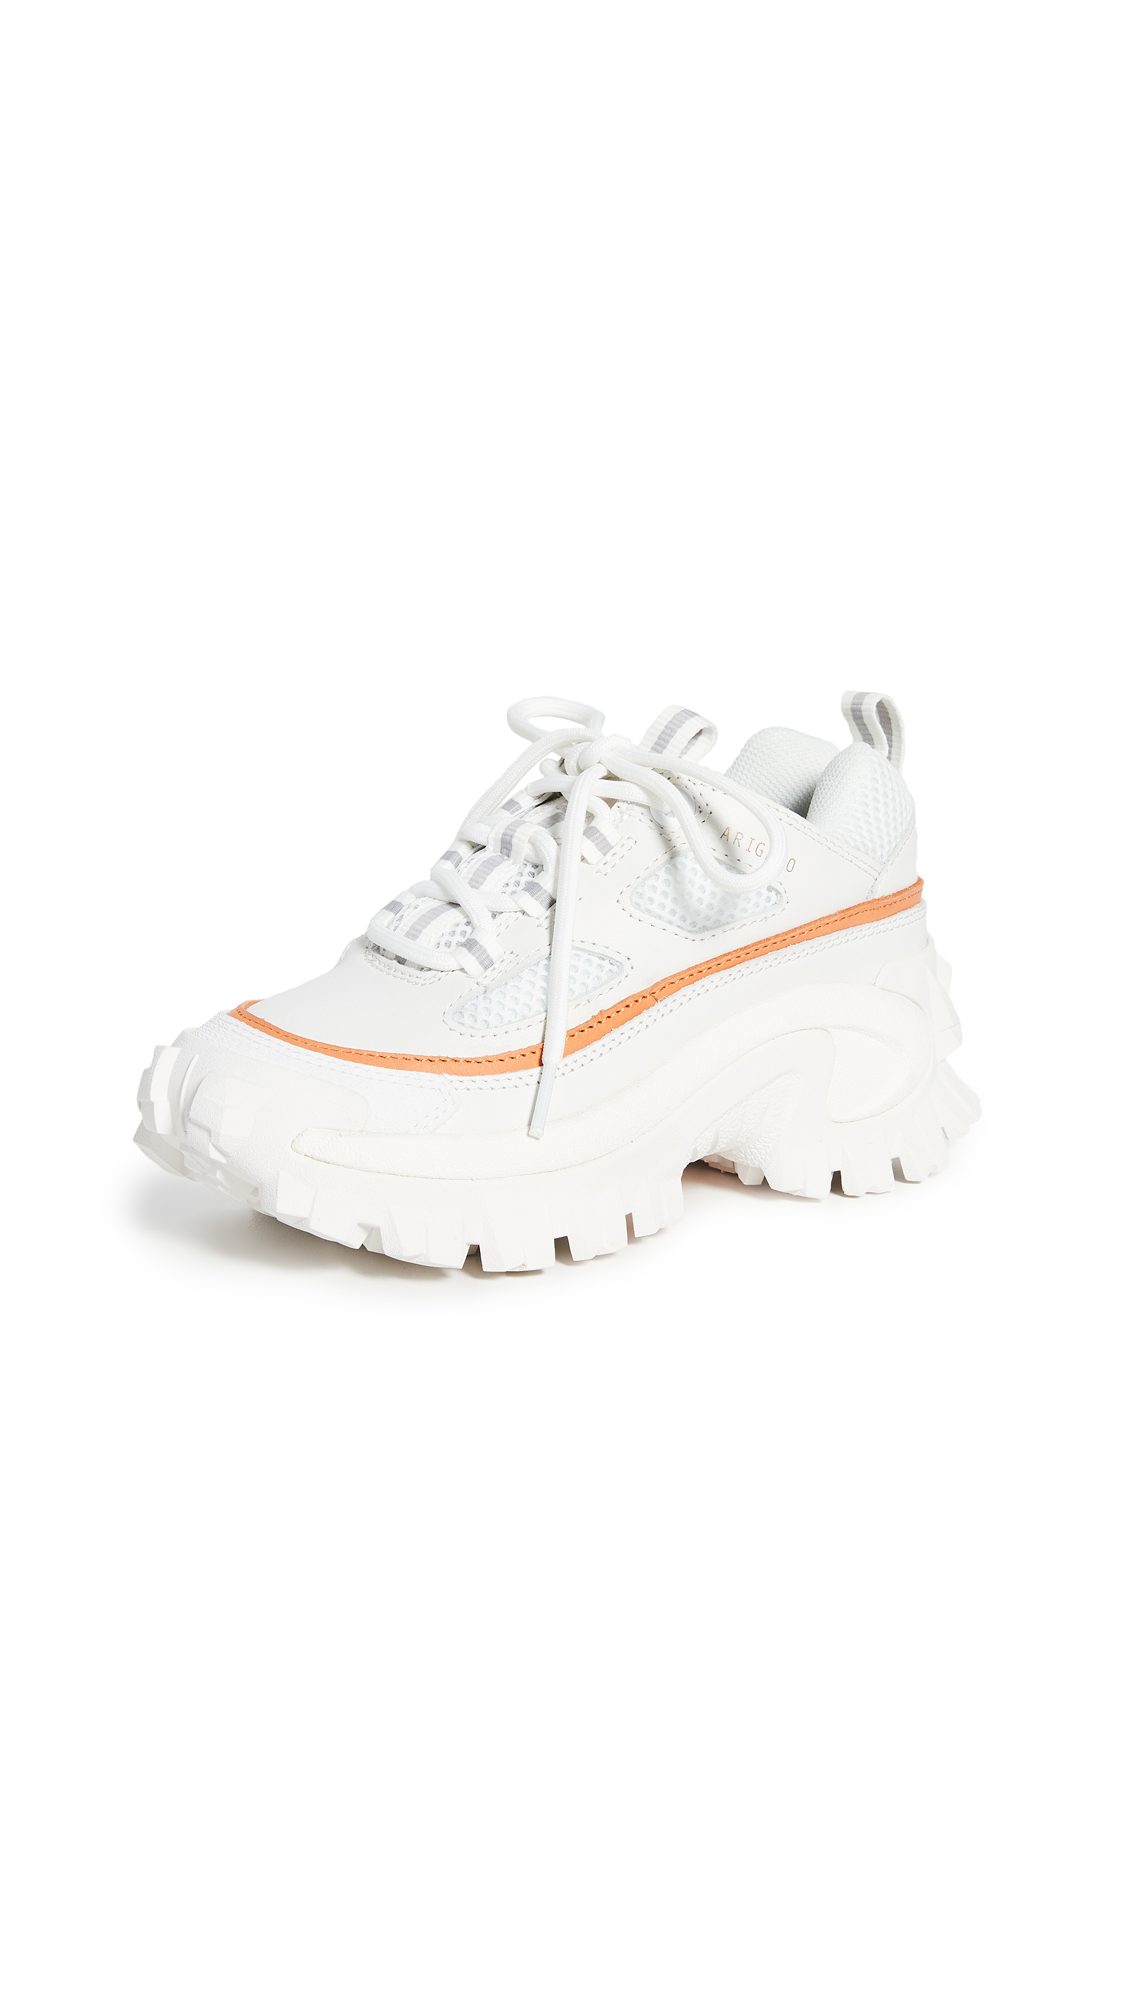 Axel Arigato Excelsior Sneakers - Star White